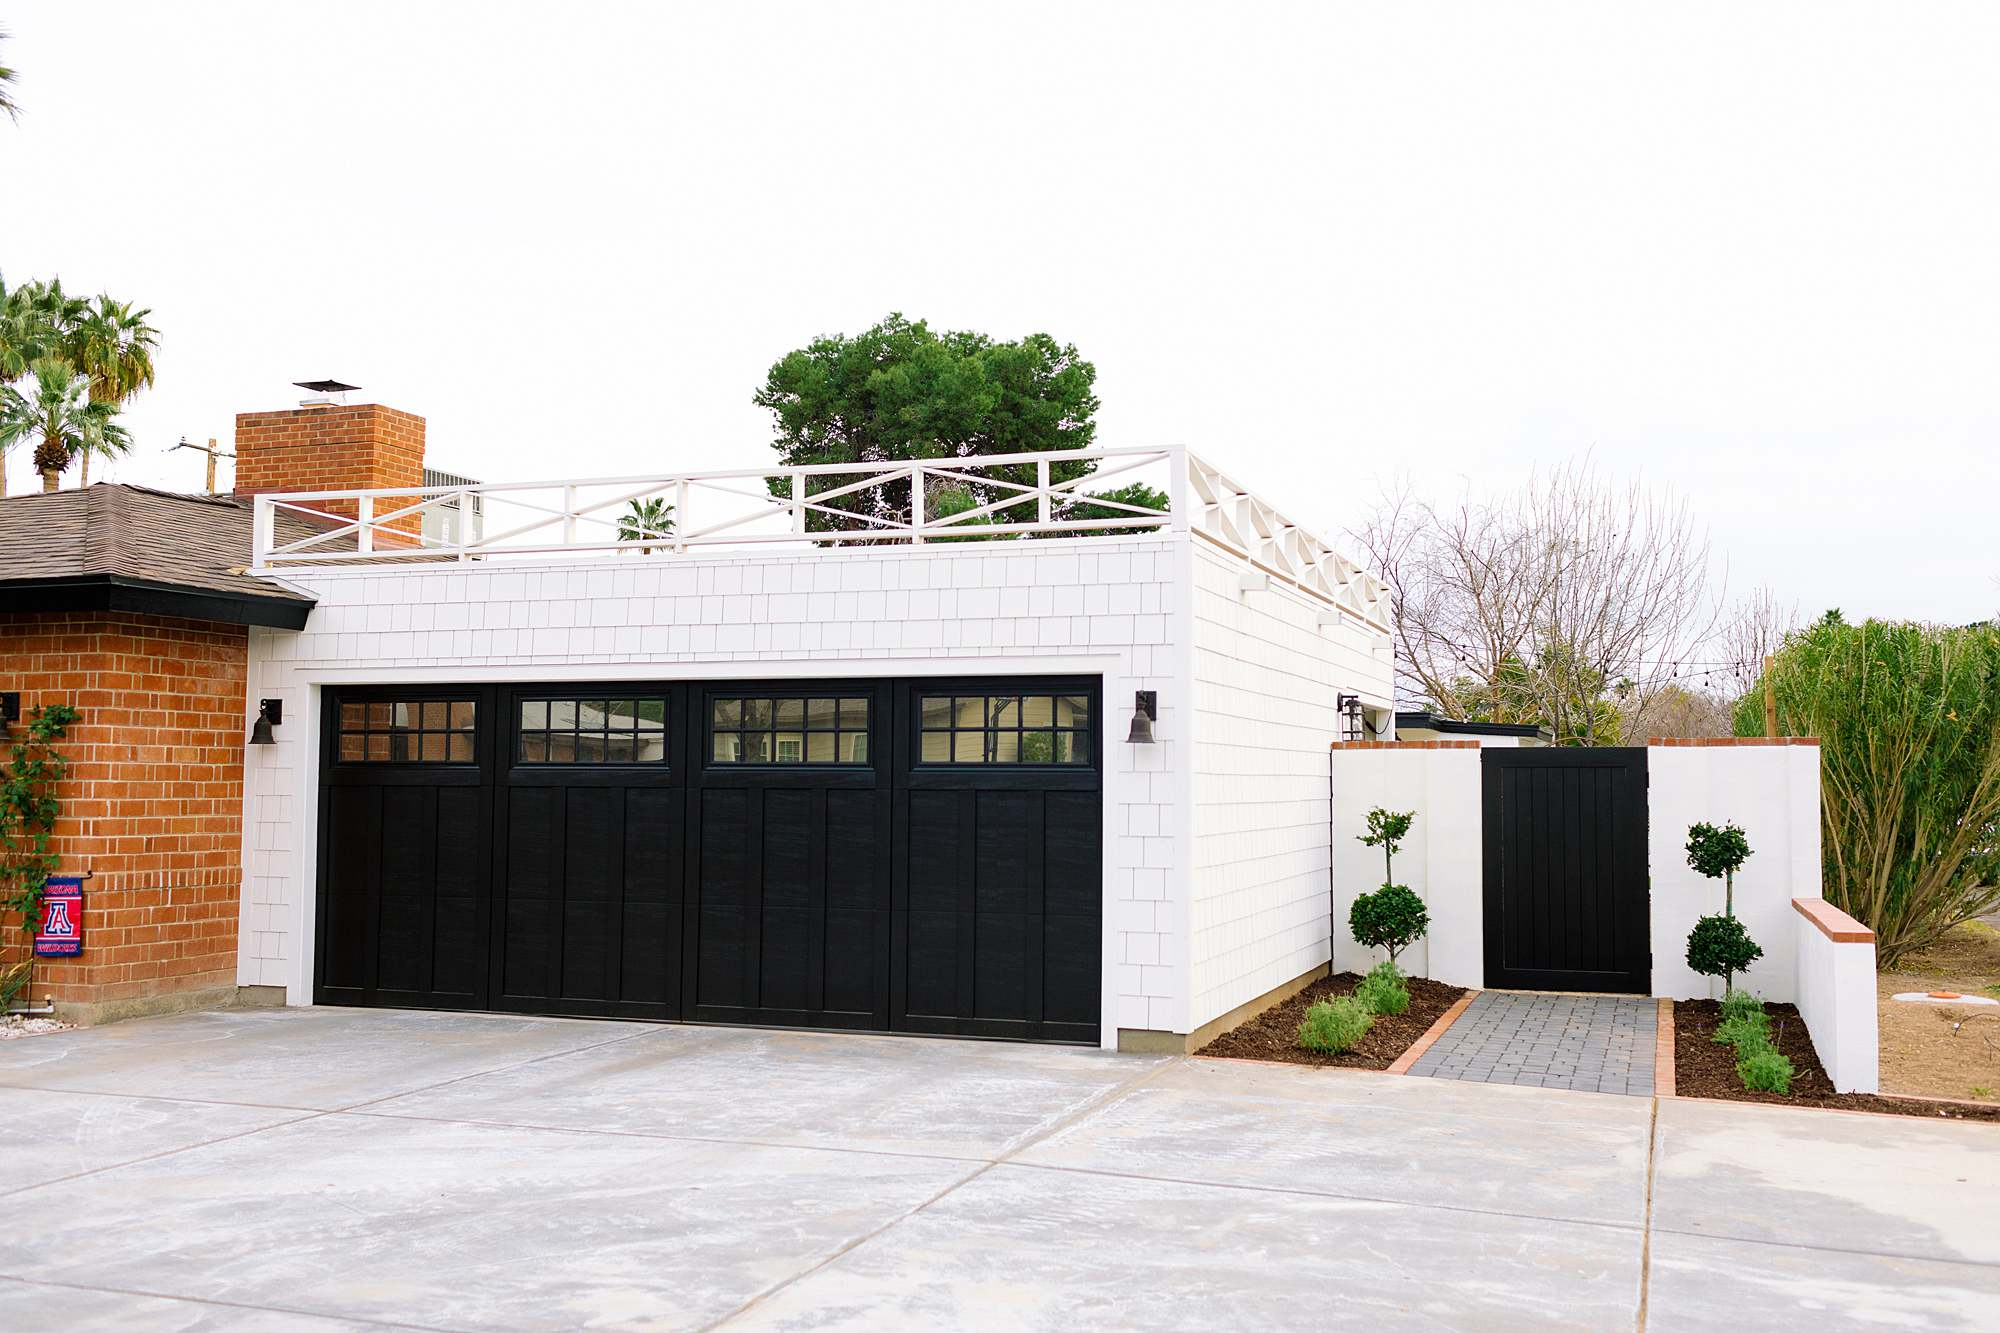 flat roof garage design idea - see blog post for photos and the garden reveal